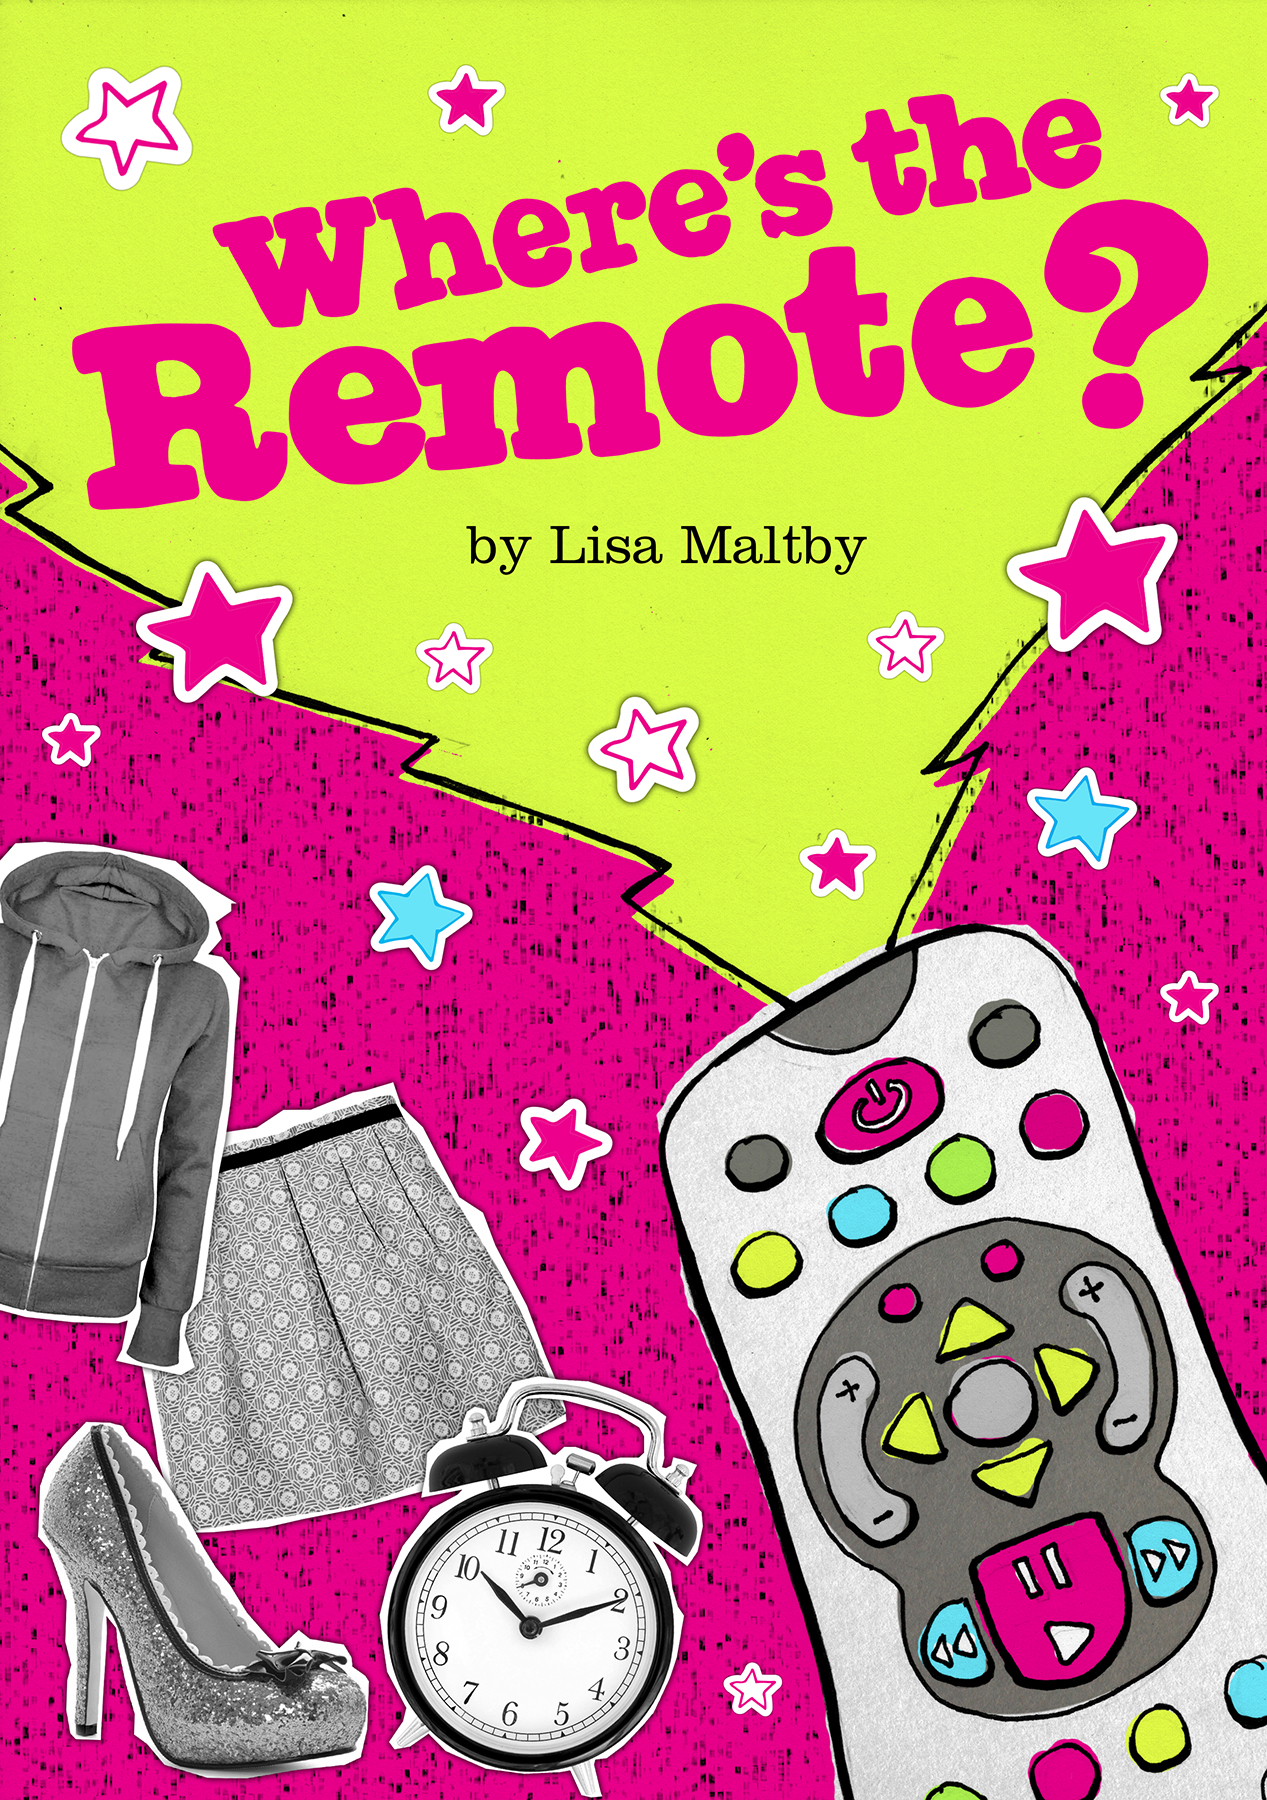 Lately I have been doing more writing for children. My previous books have been picture books for 5-8 year olds, but I've recently been writing one for 7-12 year olds called 'Where's the Remote?'. This is a story about the mysterious disappearance of the TV remote and how the re-discovery of it transforms the life of one girl called Ava. Ava's Dad is an inventor (when he's not working as a postman that is). He finds a way of transforming an ordinary TV control into a Time control device, meaning that Ava's somewhat disorganised family will never be late for anything again. When Ava gets her hands on it, she can't believe her luck. But after a series of funny and exciting events, Ava soon realises the huge responsibility of being able to control time.  I will be entering this book into the Montegrappa Scholastic Prize for New Children's Writing. Wish me luck!